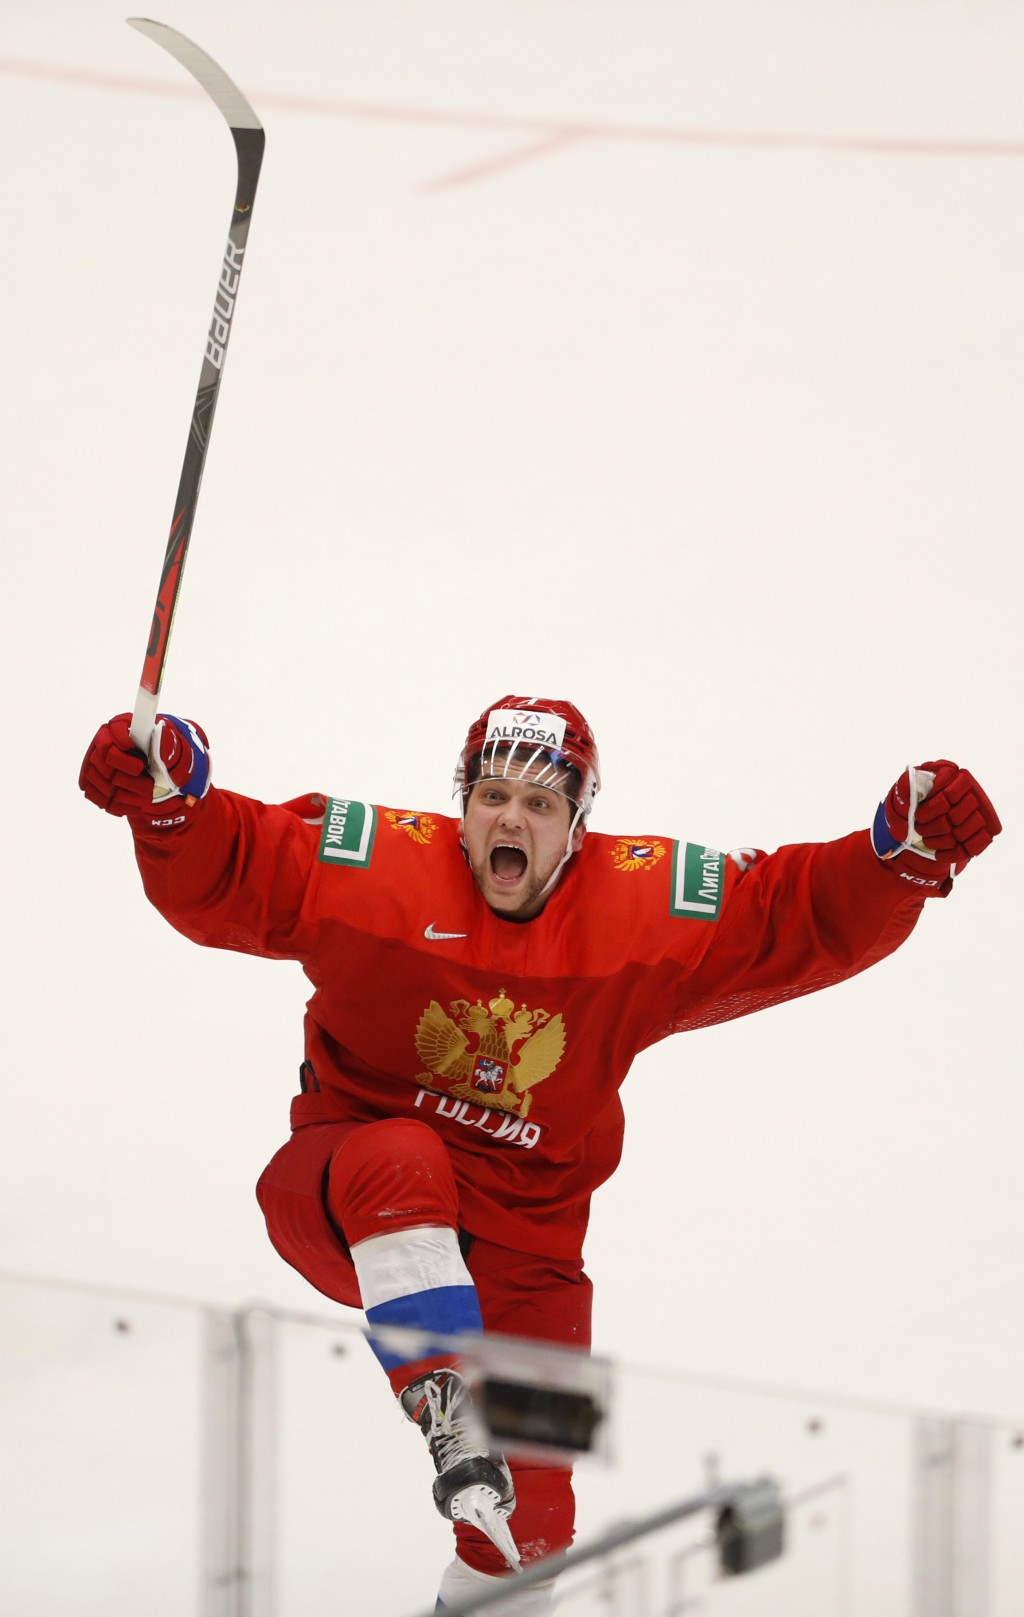 Russia's Alexander Khovanov celebrates after winning the U20 Ice Hockey Worlds semifinal match between Sweden and Russia in Ostrava, Czech Republic, S...